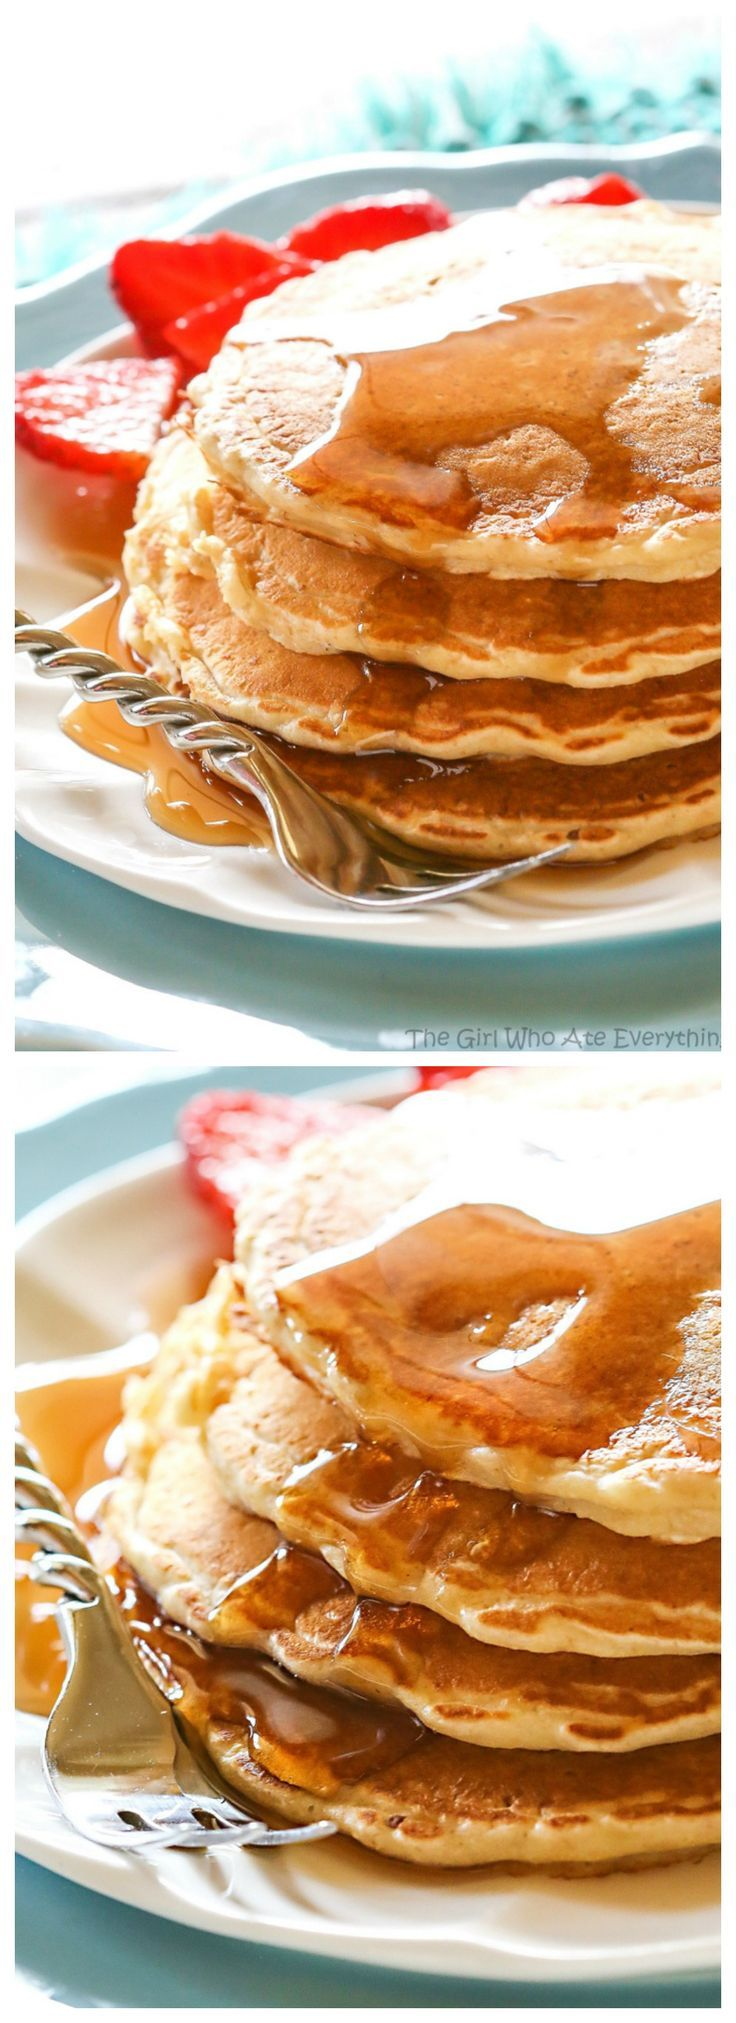 These Healthy Oatmeal Pancakes are hearty and filling. This tried and true breakfast recipe comes from the Duggar family.